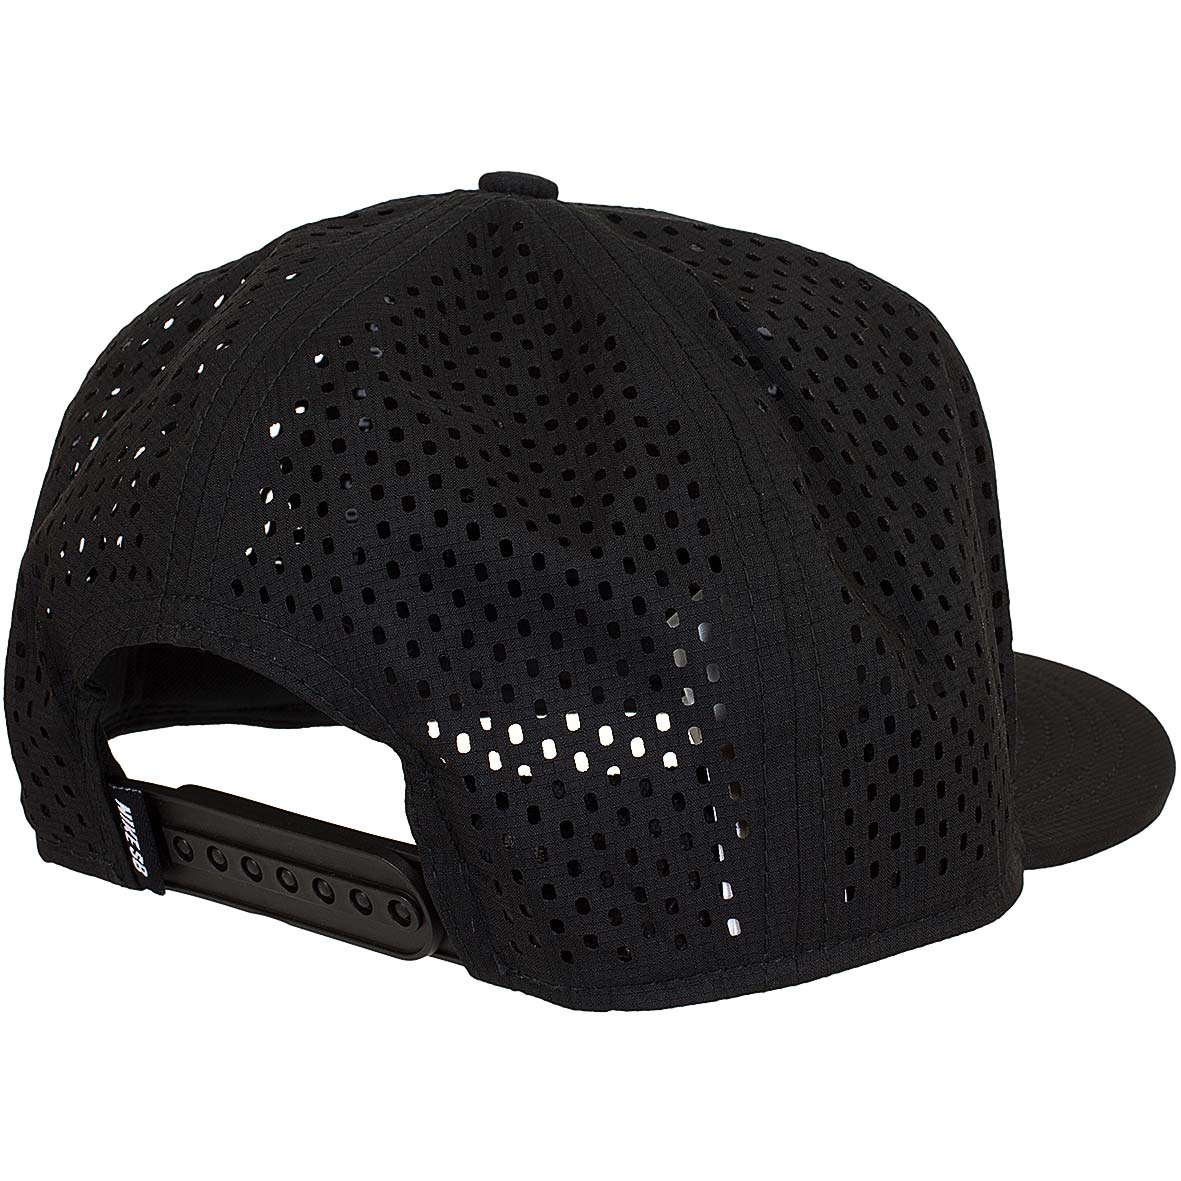 nike snapback kinder cap sb aero bill schwarz wei hier bestellen. Black Bedroom Furniture Sets. Home Design Ideas